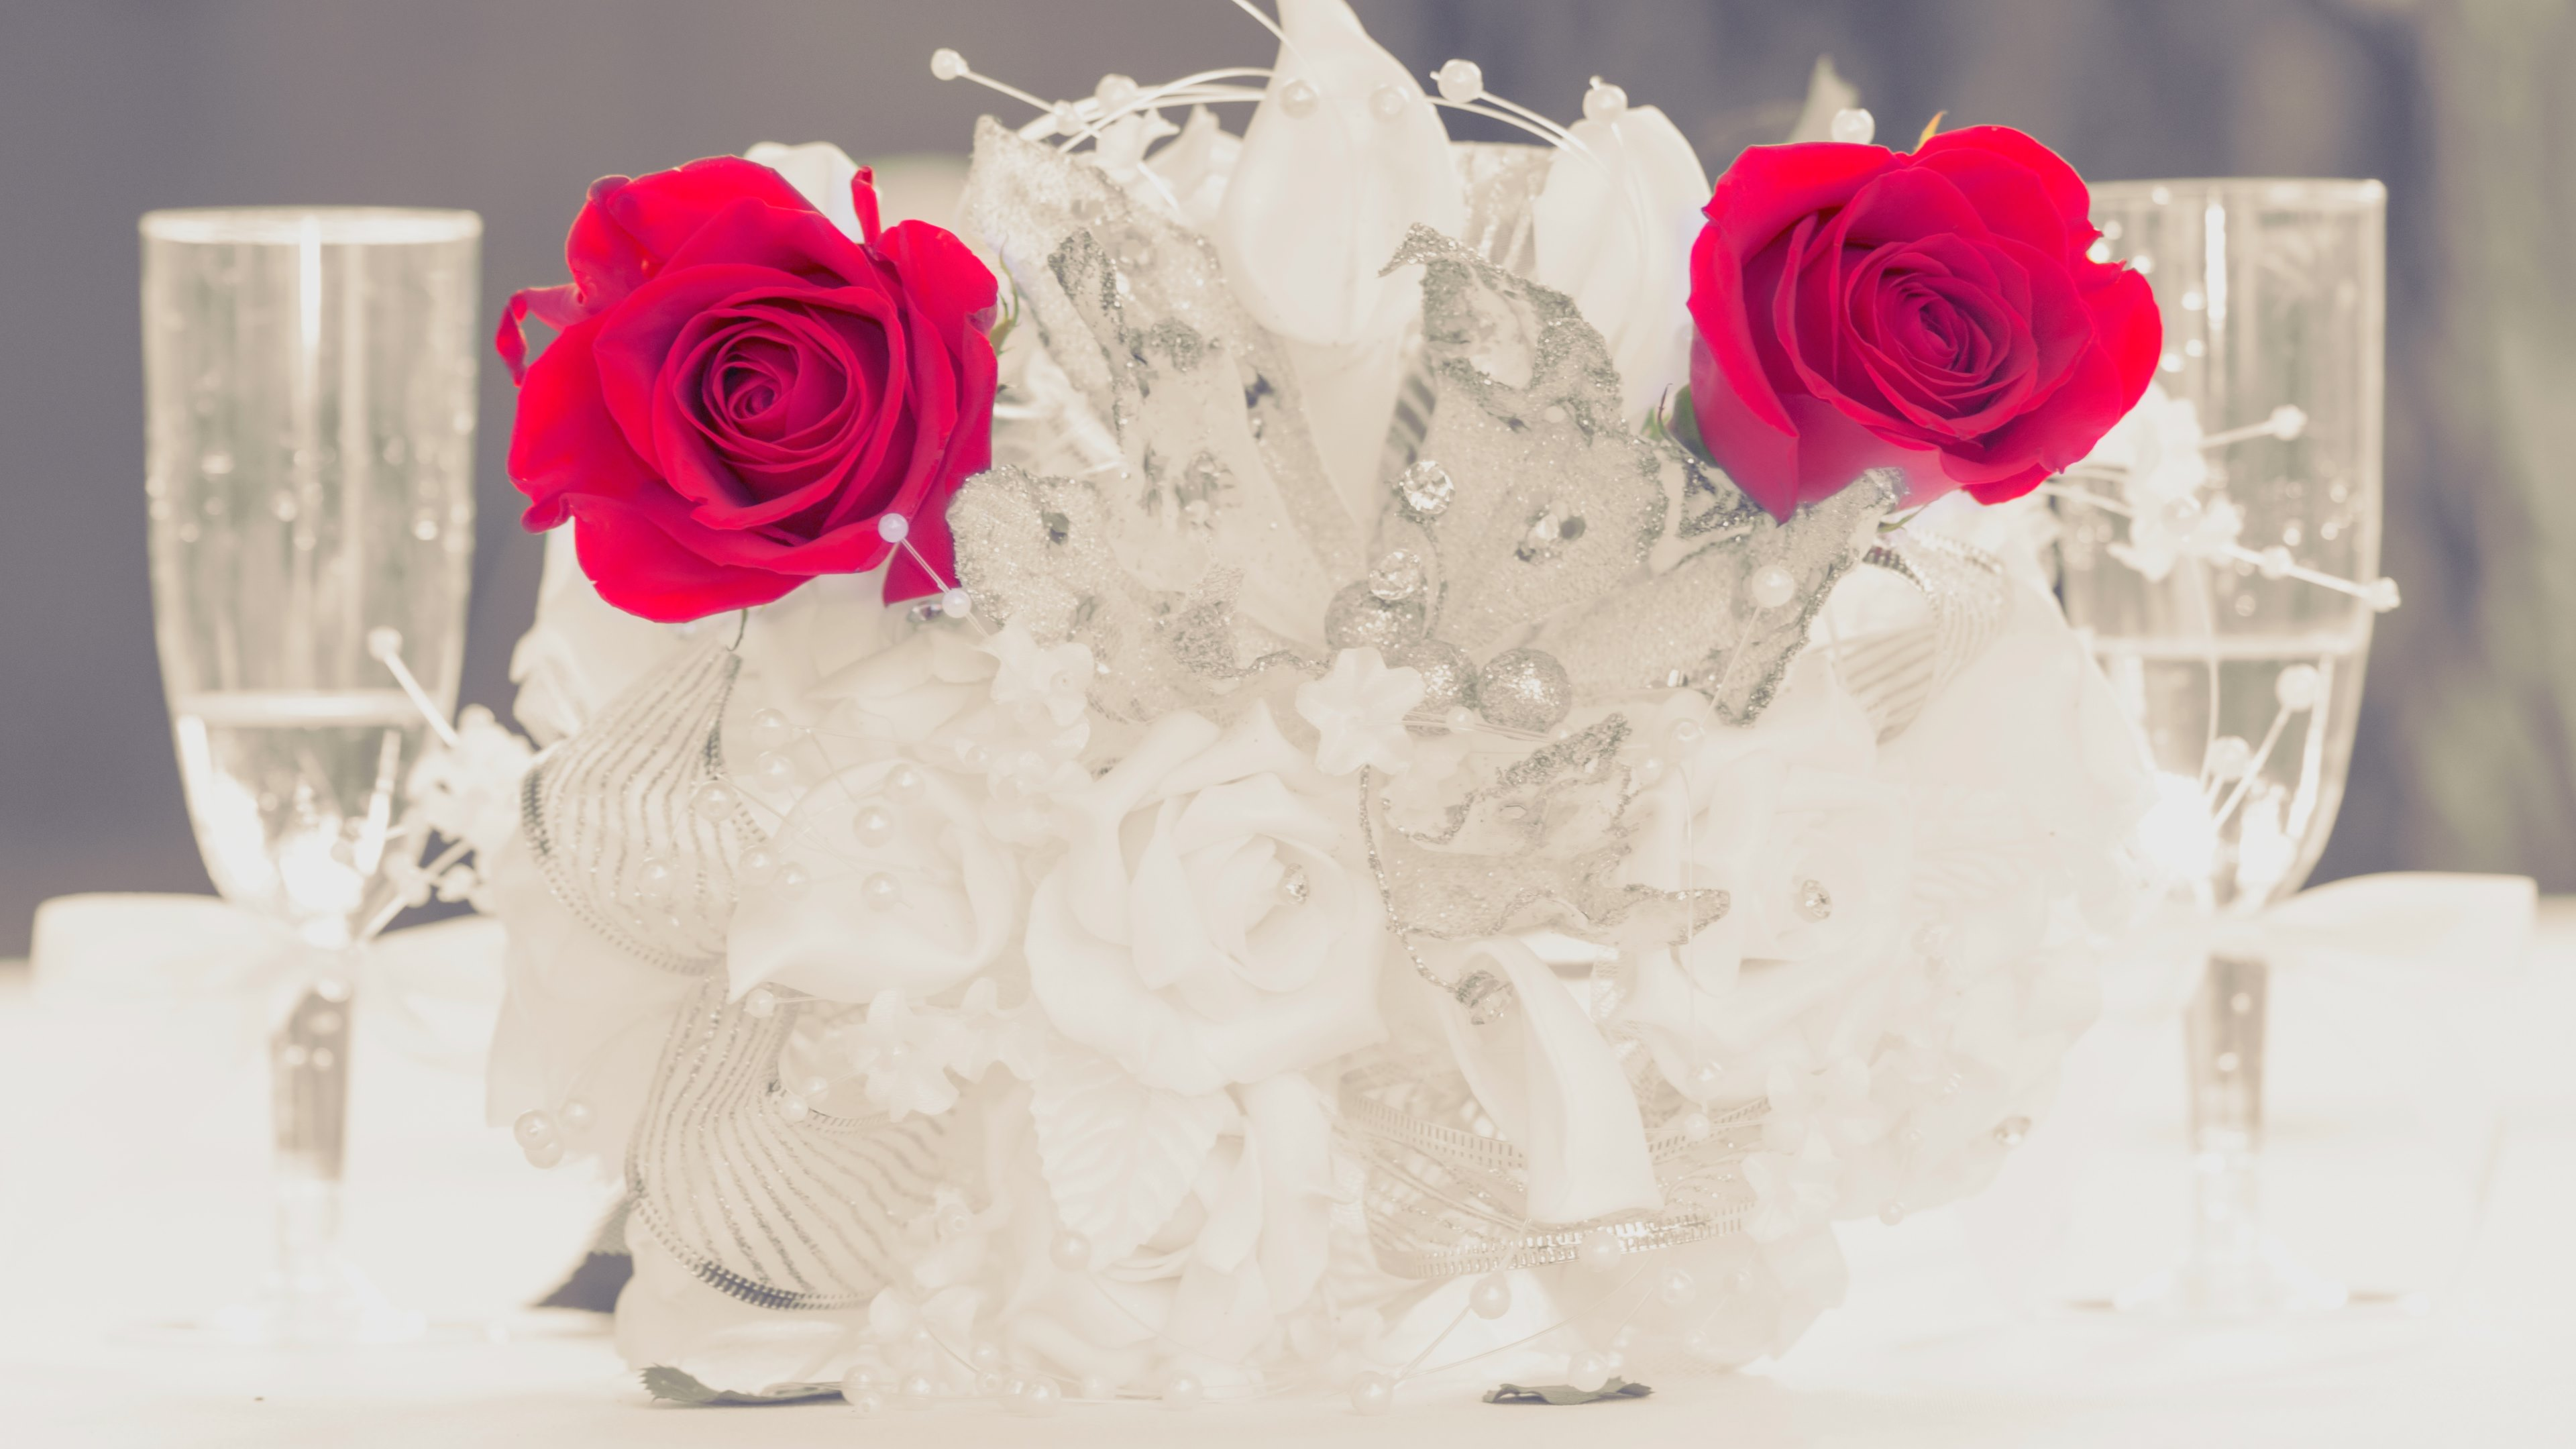 Wedding Bouquet Definition : Bridal bouquet and ring hd wallpapers ? k